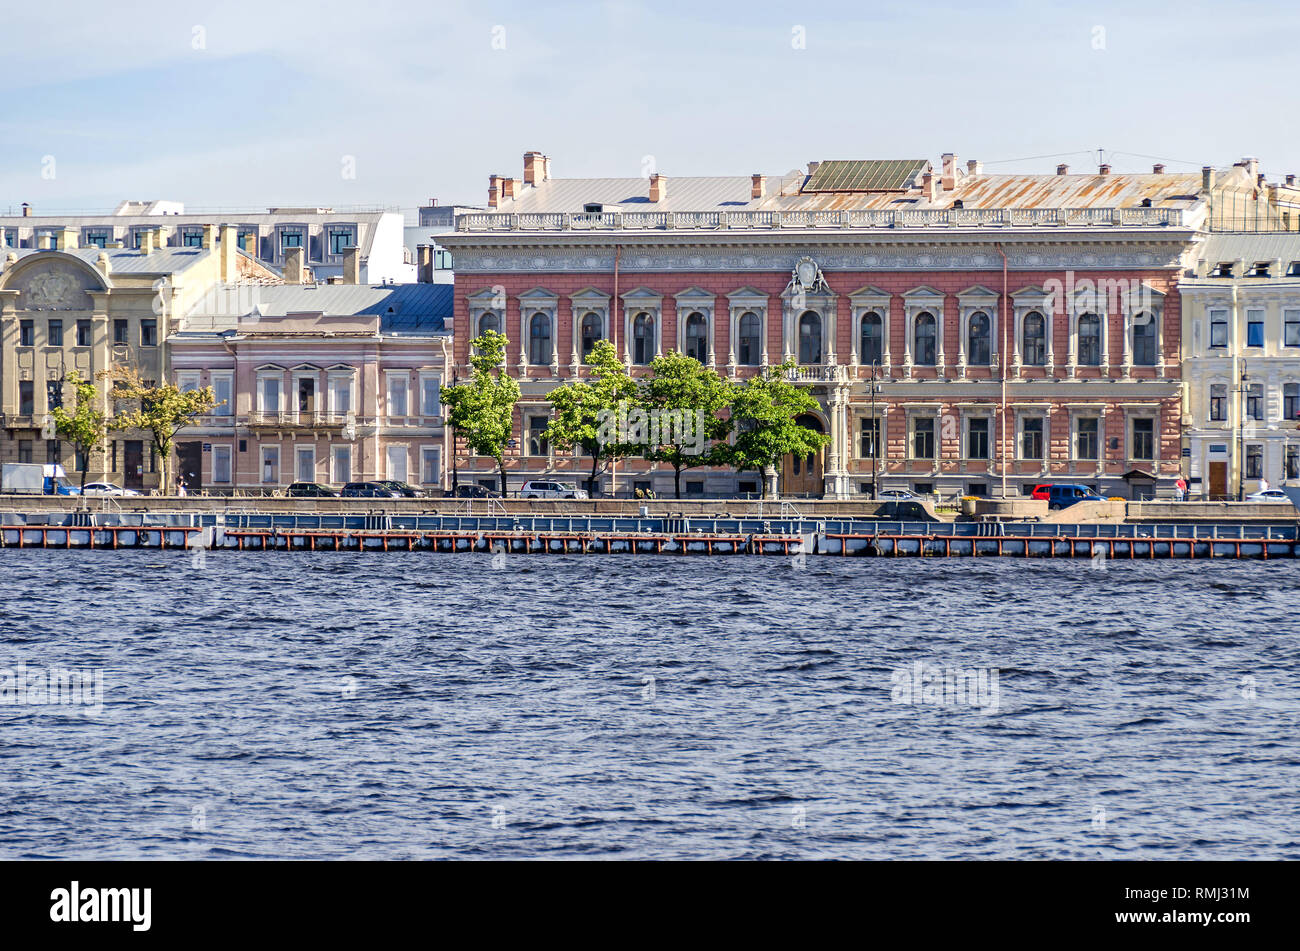 Saint Petersburg, Russia -  June 27, 2018: Neva River and Angliyskaya Embankment (English Embankment) with former palatial houses of imperial Russian  - Stock Image